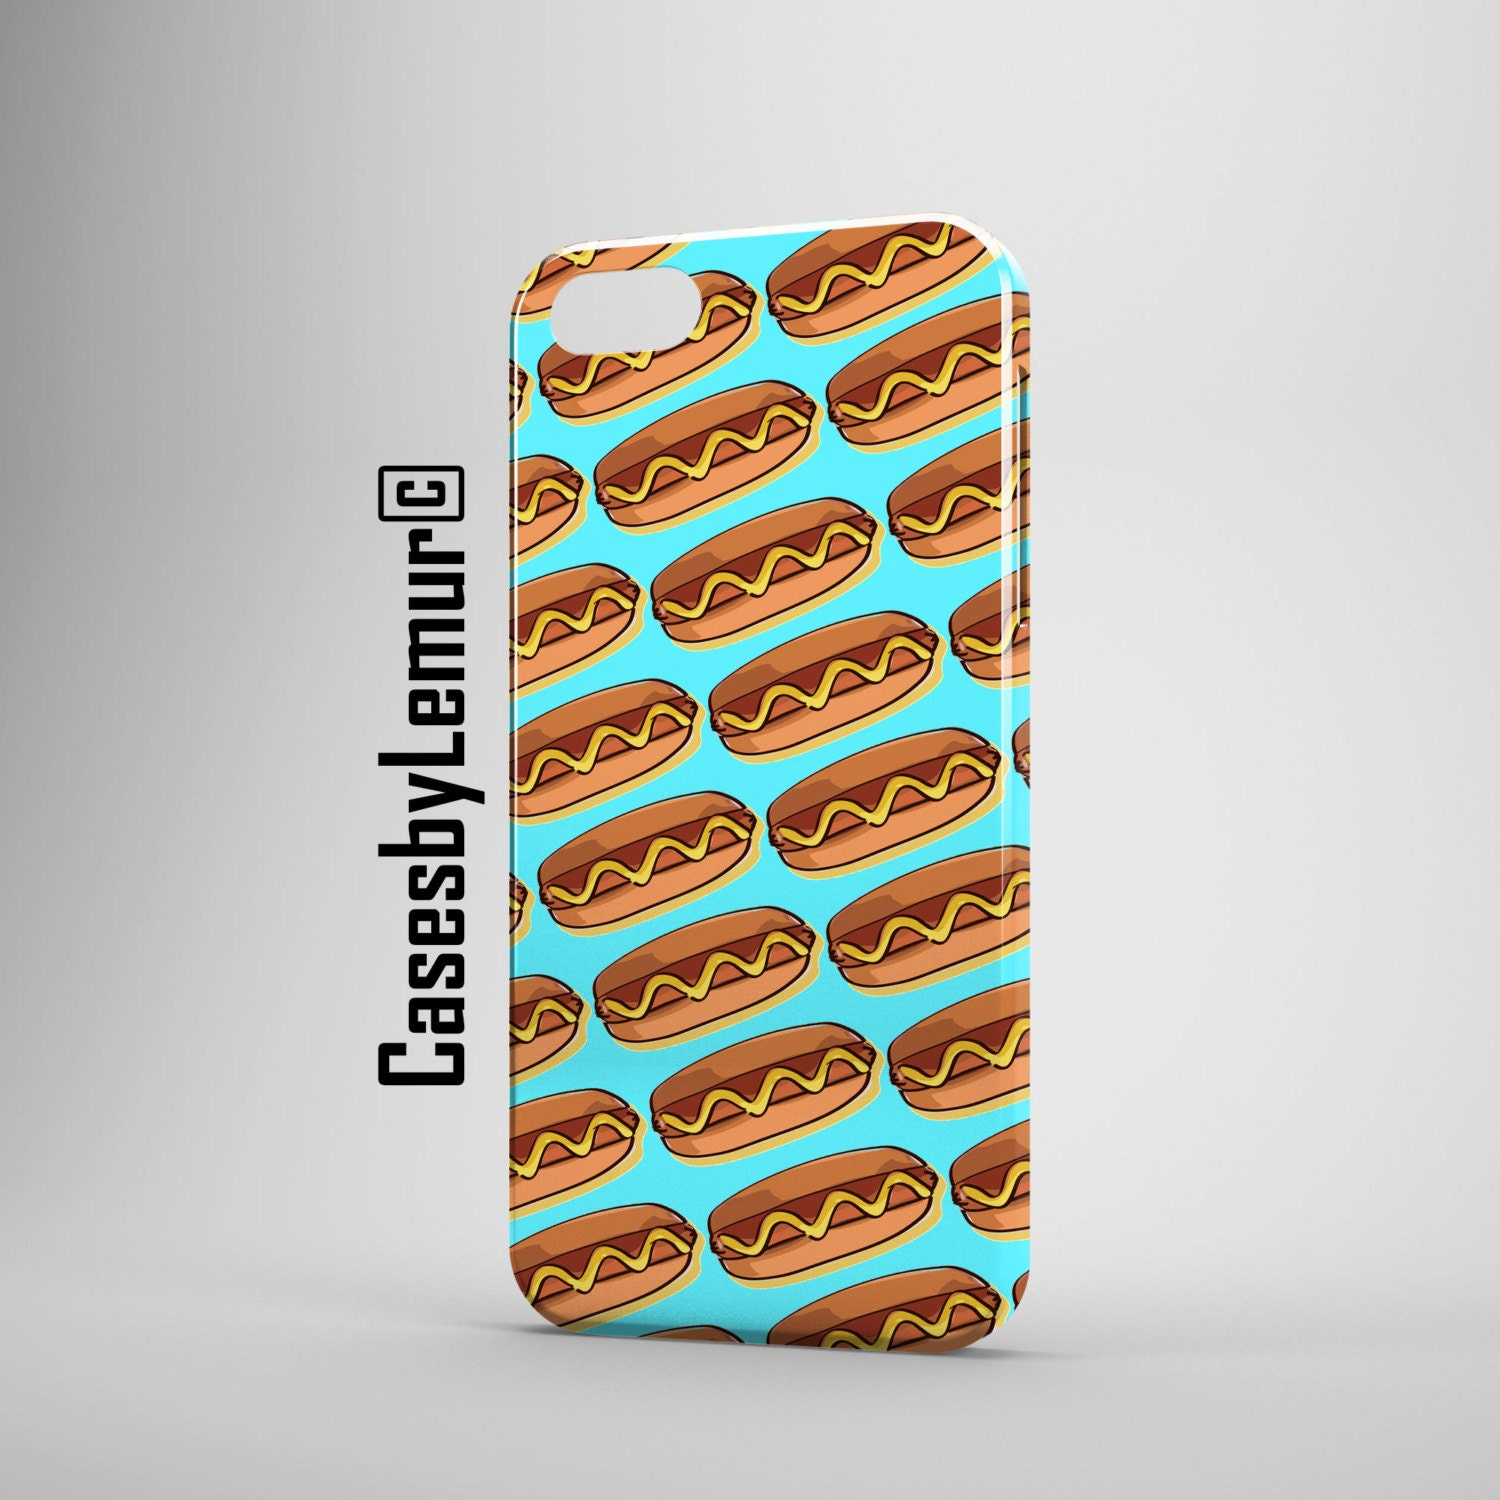 FOOD PRINT Iphone 6 case Food Art Iphone 5 case Fast Food Iphone 5C case Food Phone Case Hot Dog Iphone 5s case Pop Art Iphone 6 plus case